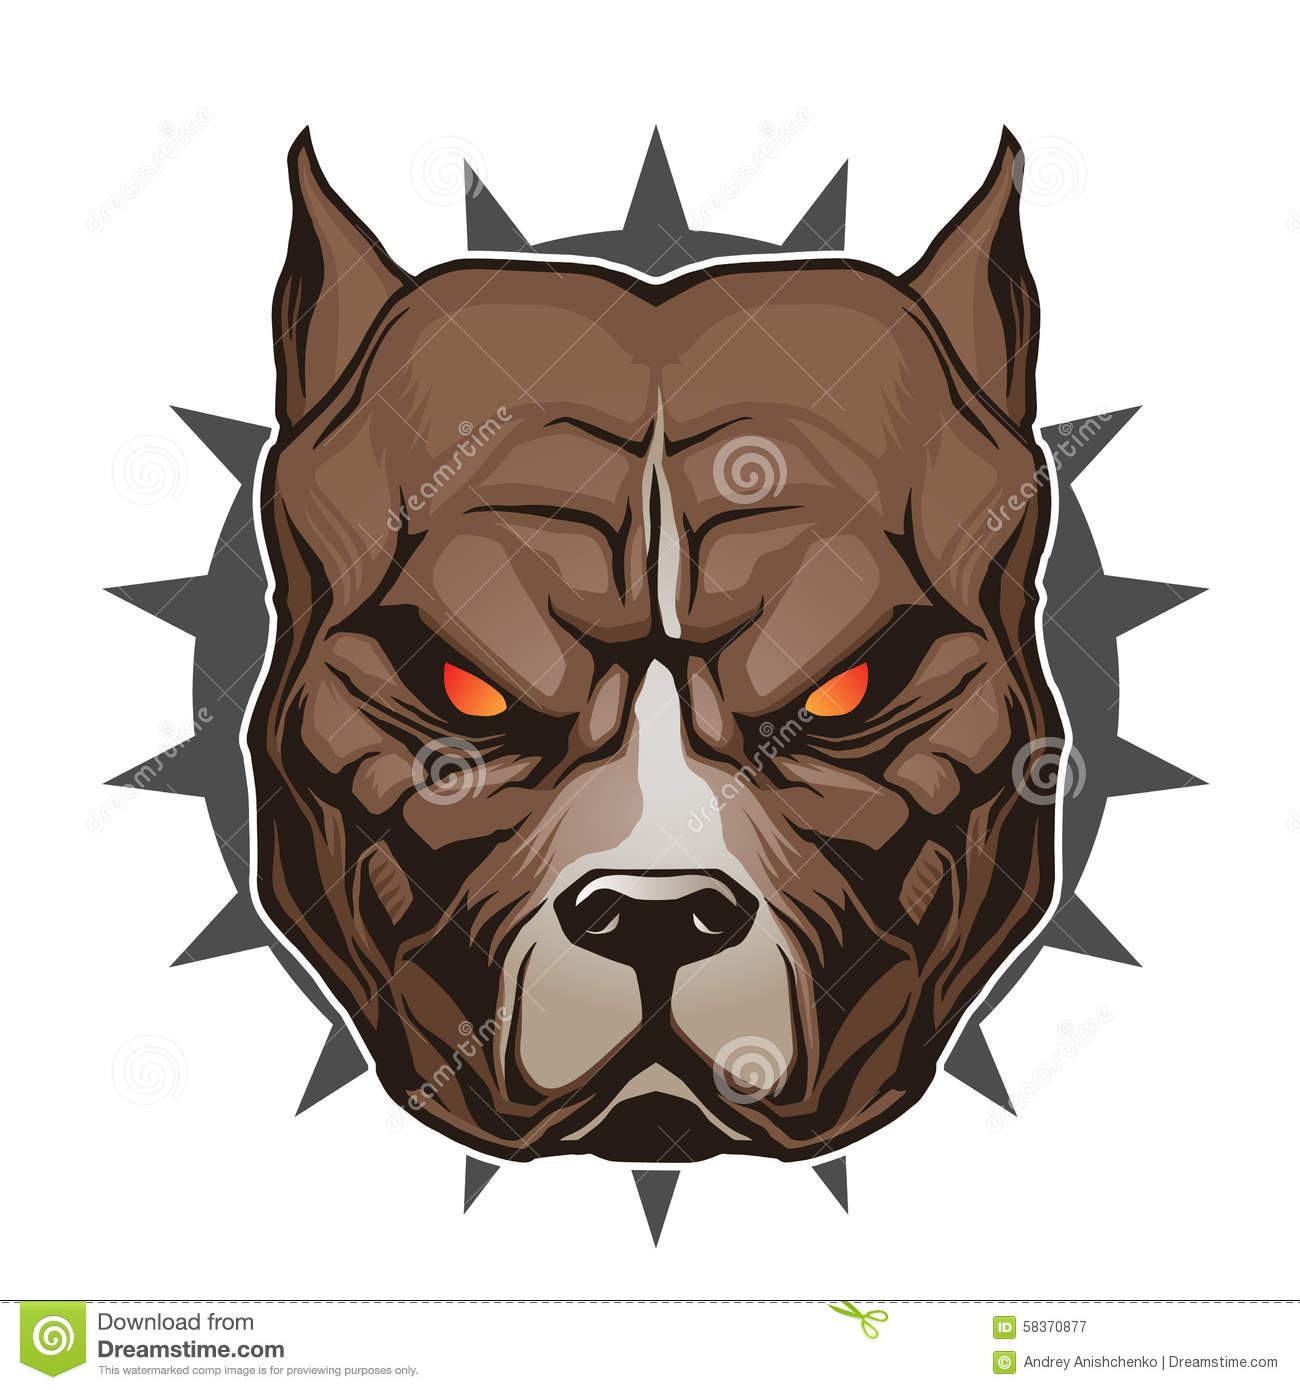 Pitbull Head Stock Vector. Illustration Of Element, Canine